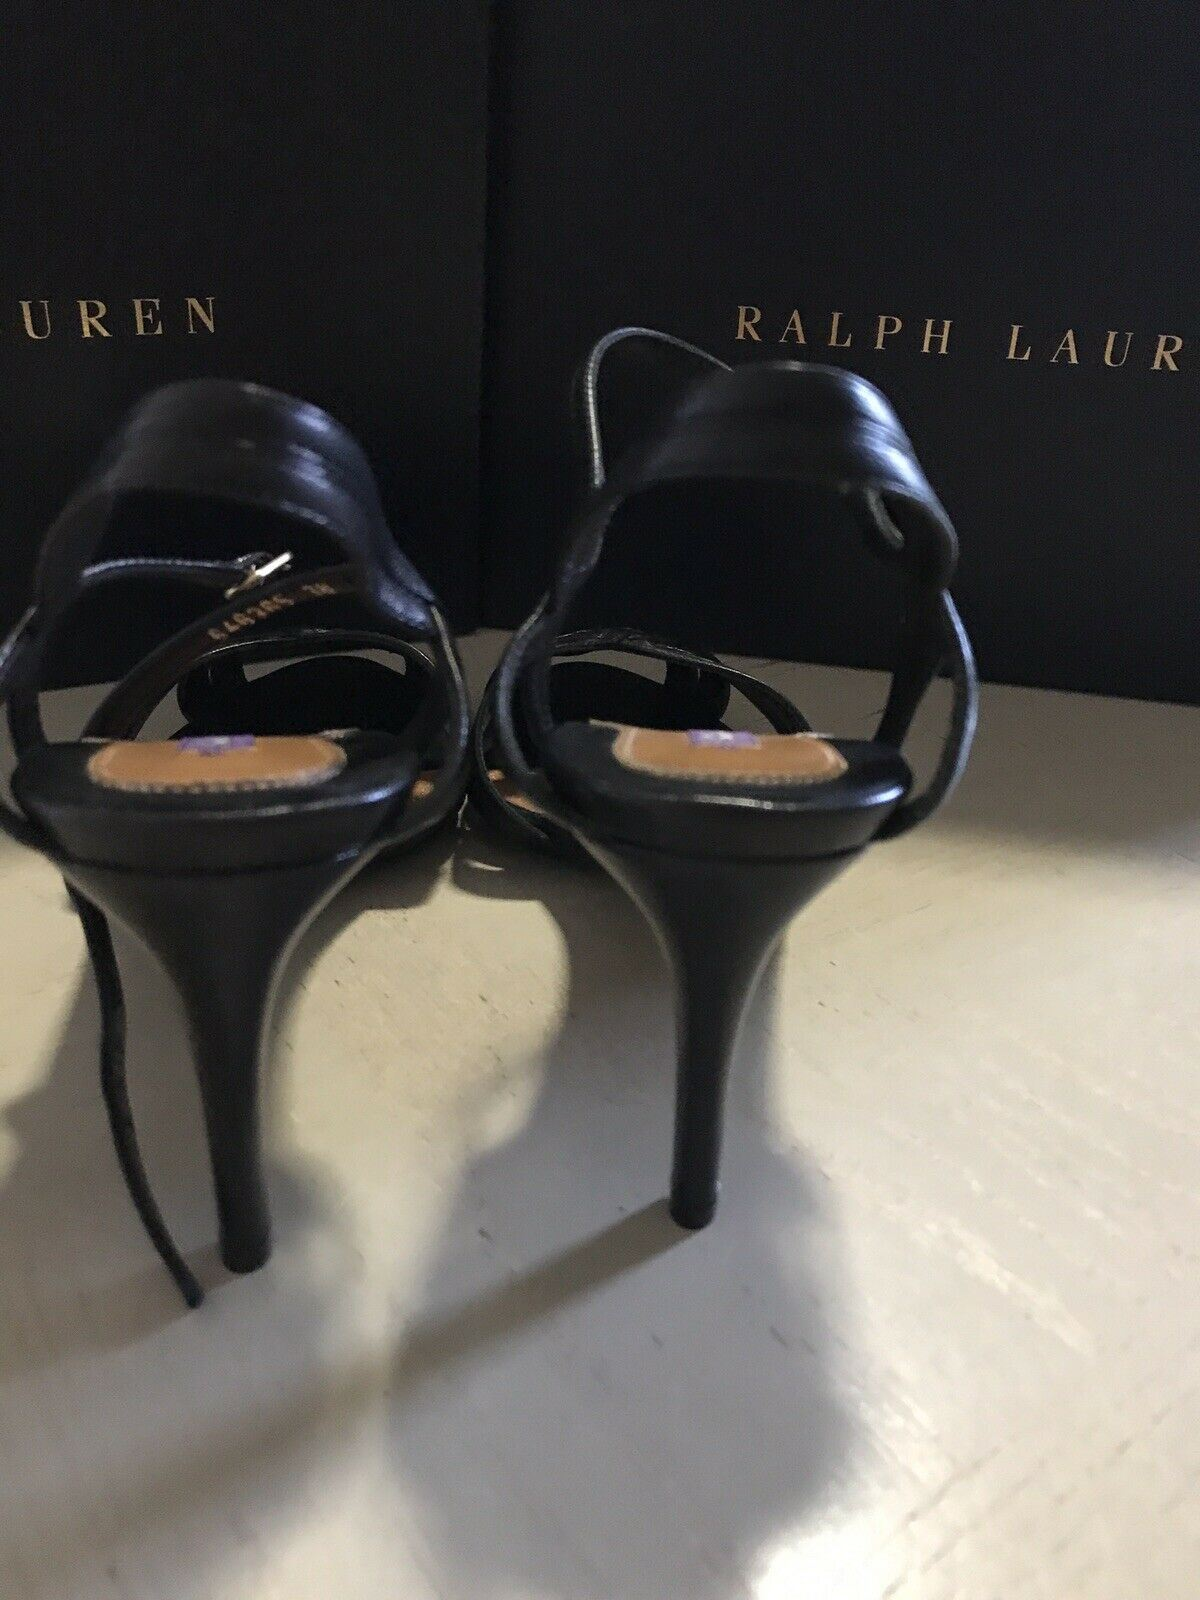 NIB $795 Ralph Lauren Collection Women's Sandal Shoes Black 8 US ( 38 Eu ) Italy